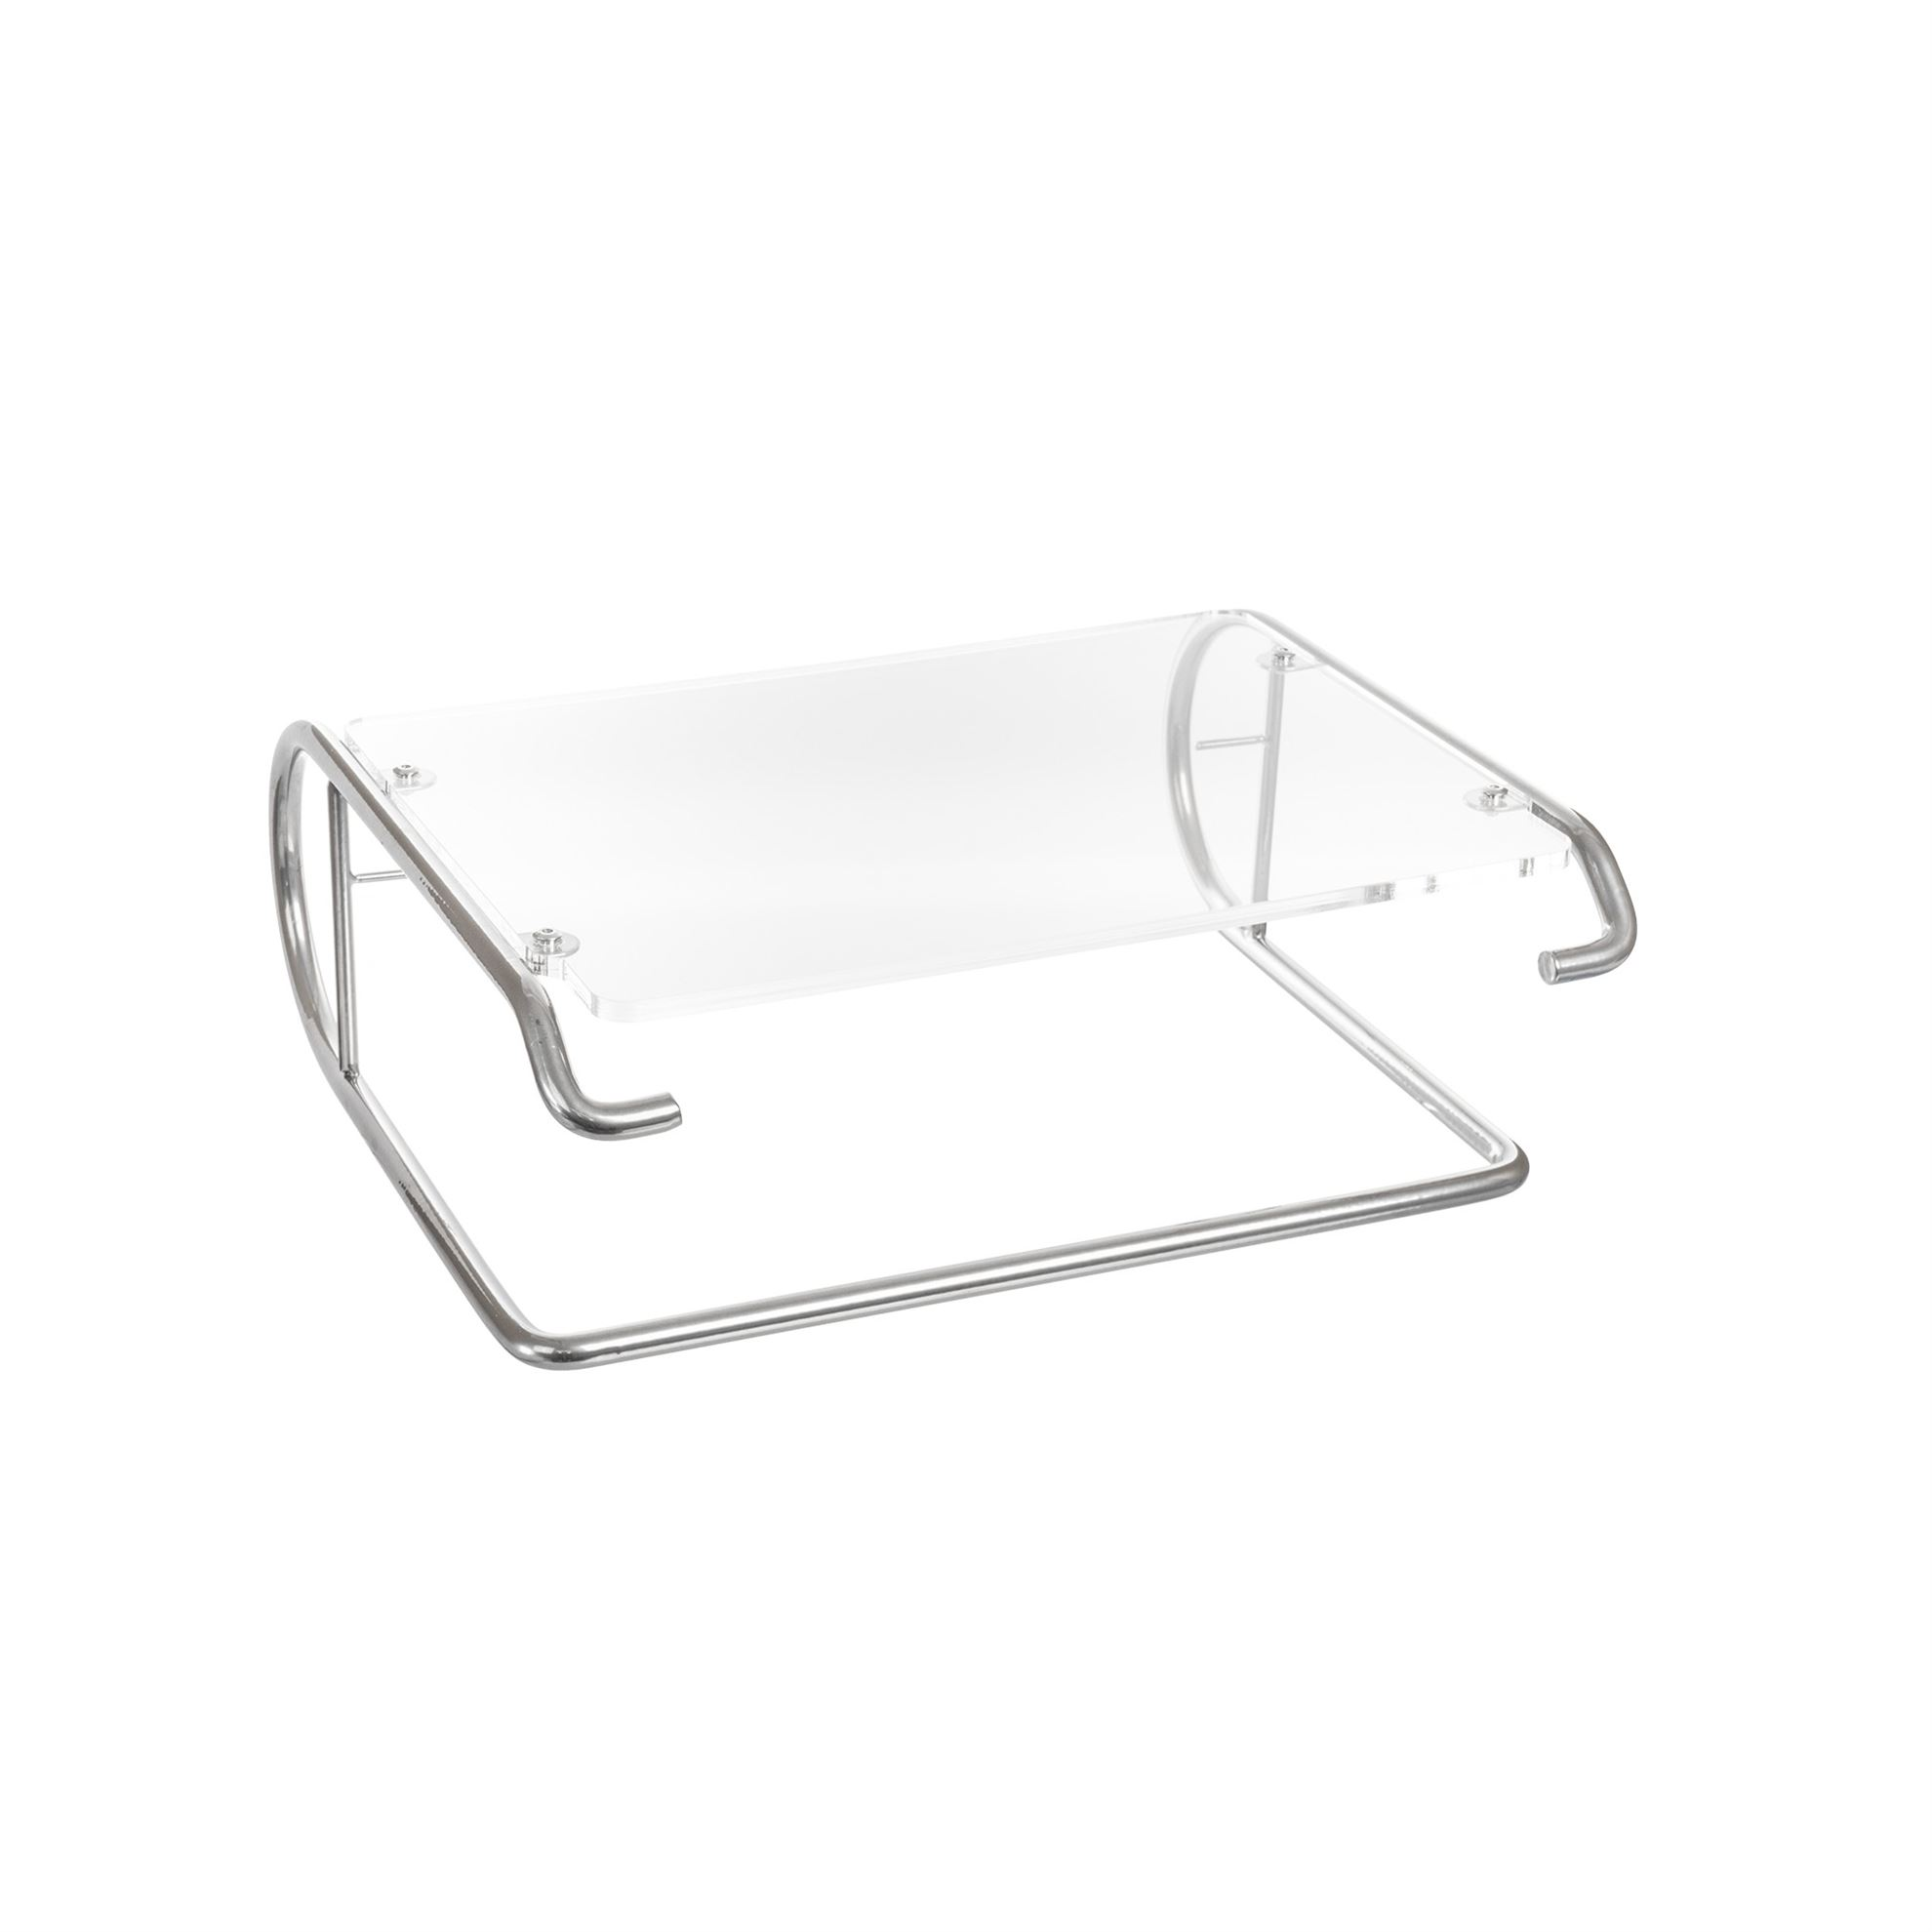 R-Go Steel Essential Monitor Stand, silver - 1